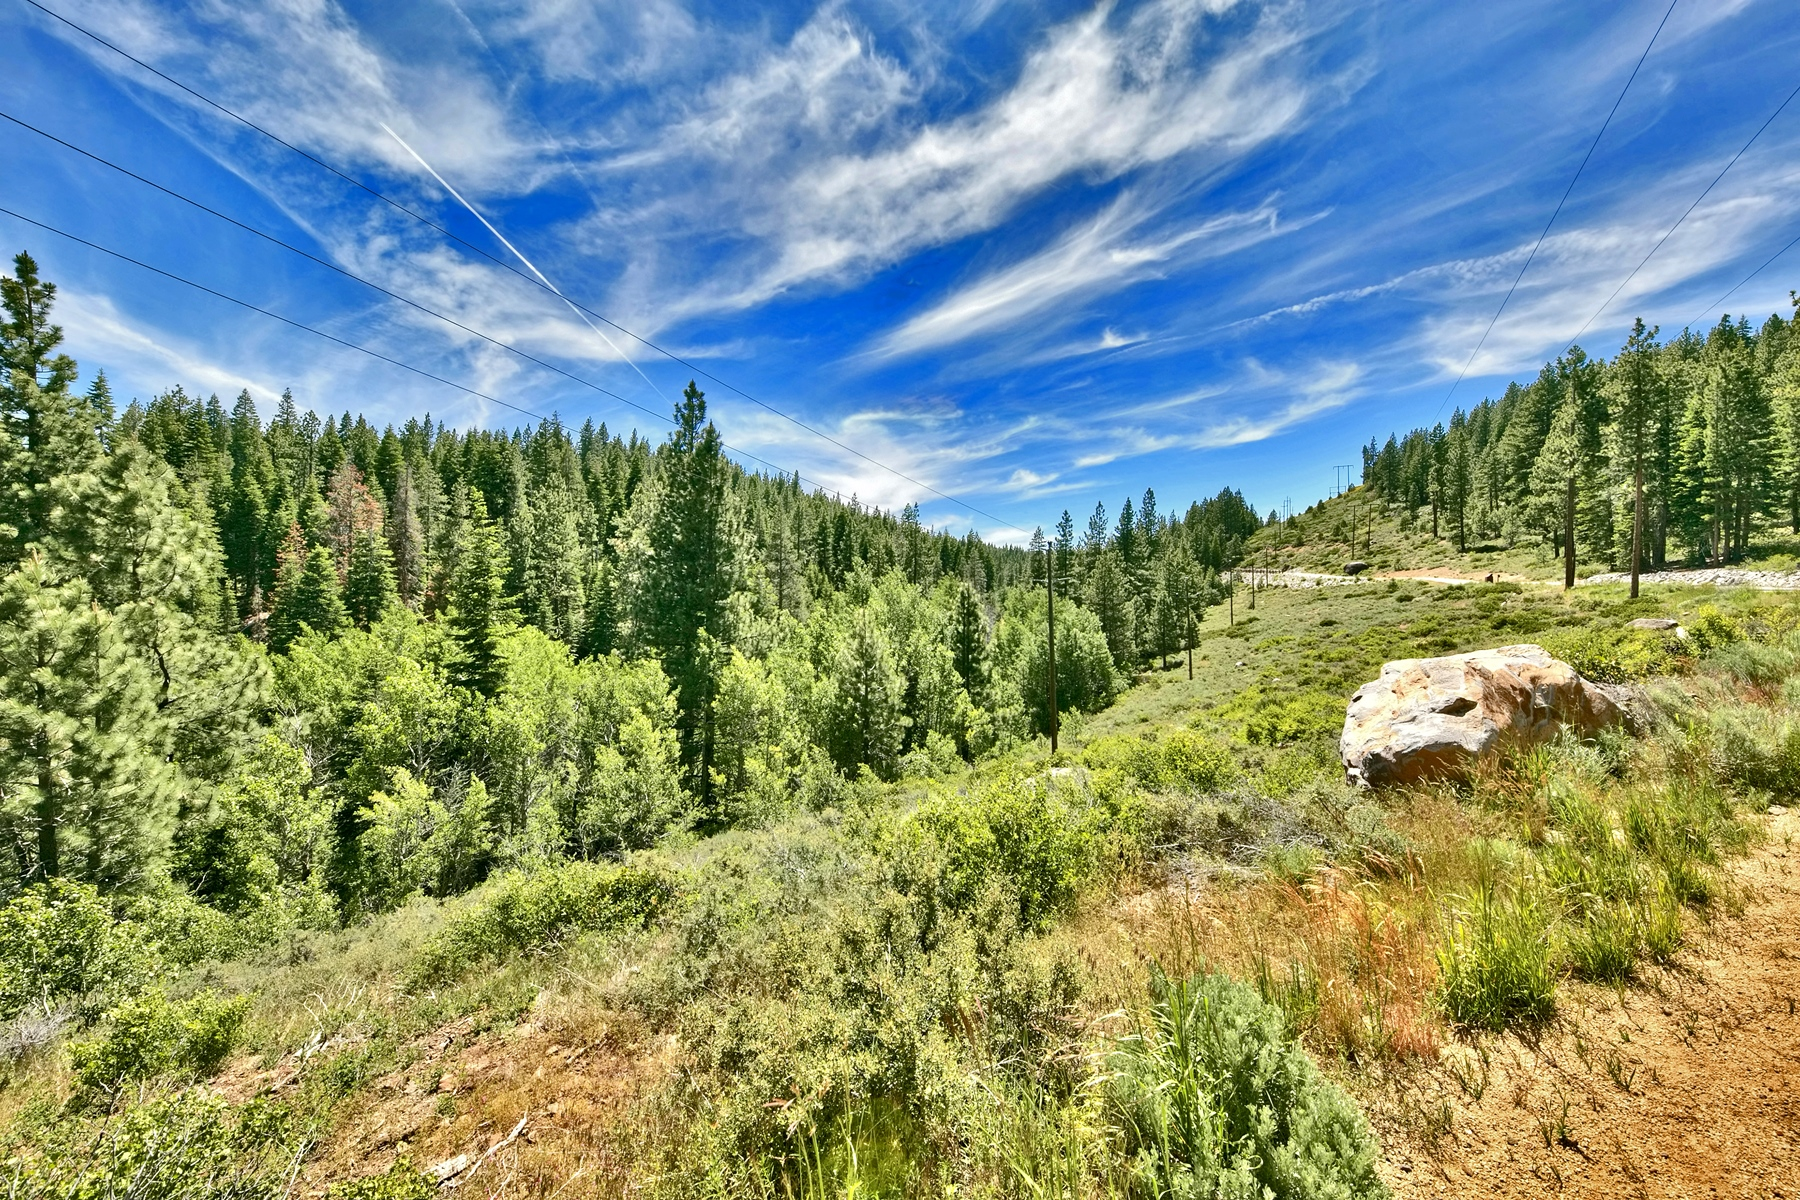 Property for Active at 000 Pioneer Trail, Truckee, CA 96161 000 Pioneer Trail Truckee, California 96161 United States